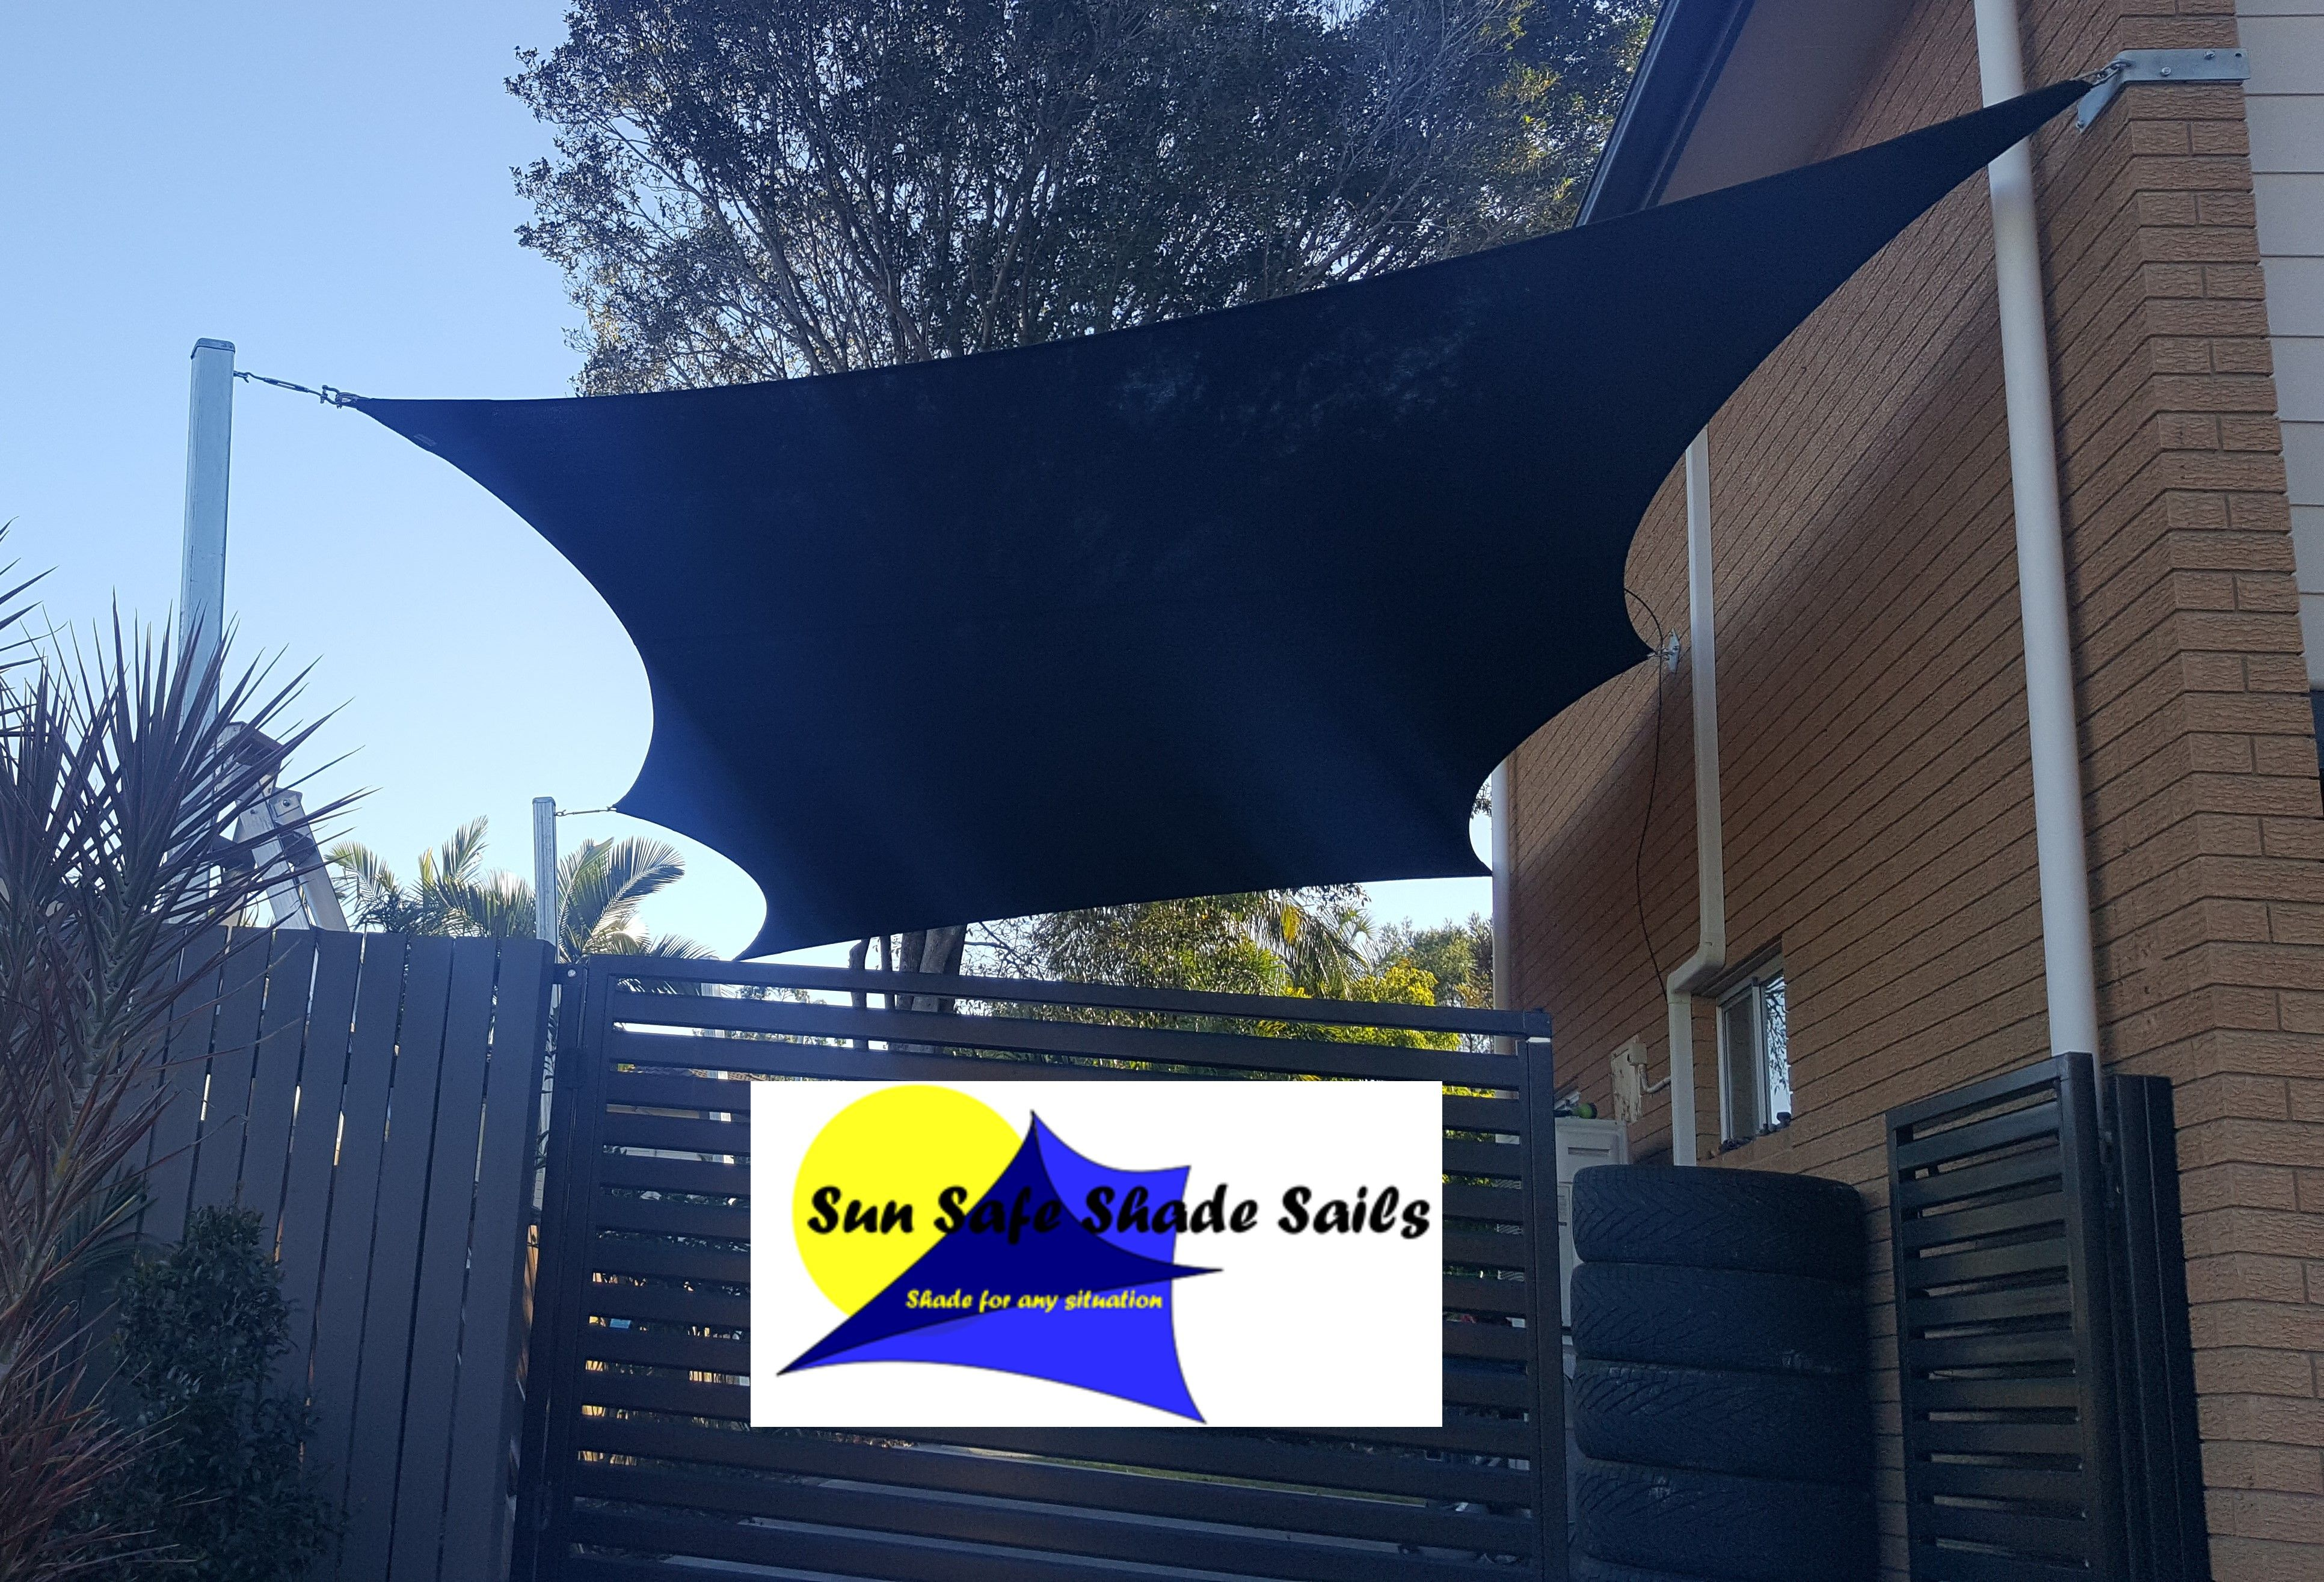 Voile D Ombrage 6 X 4 black 6 point shade sail attached to the side of the house